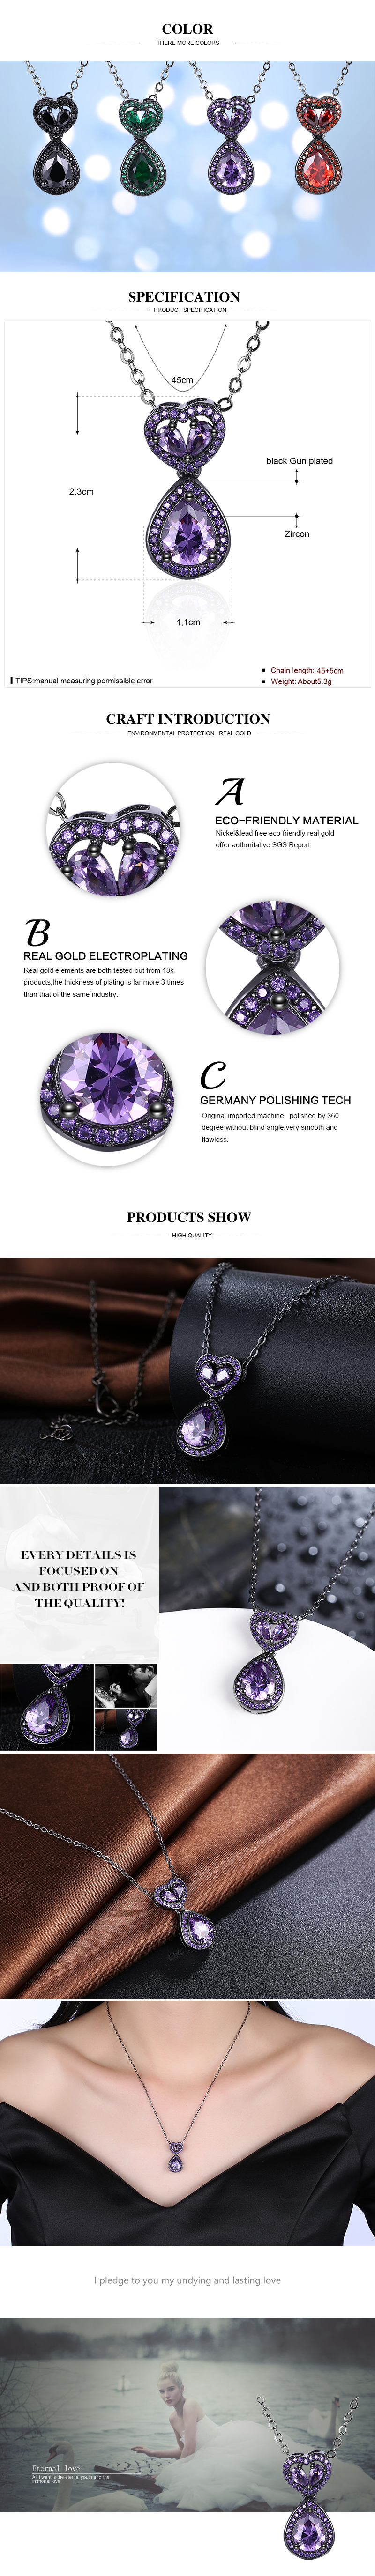 Black Gun Plated Necklaces NHKL12329-D